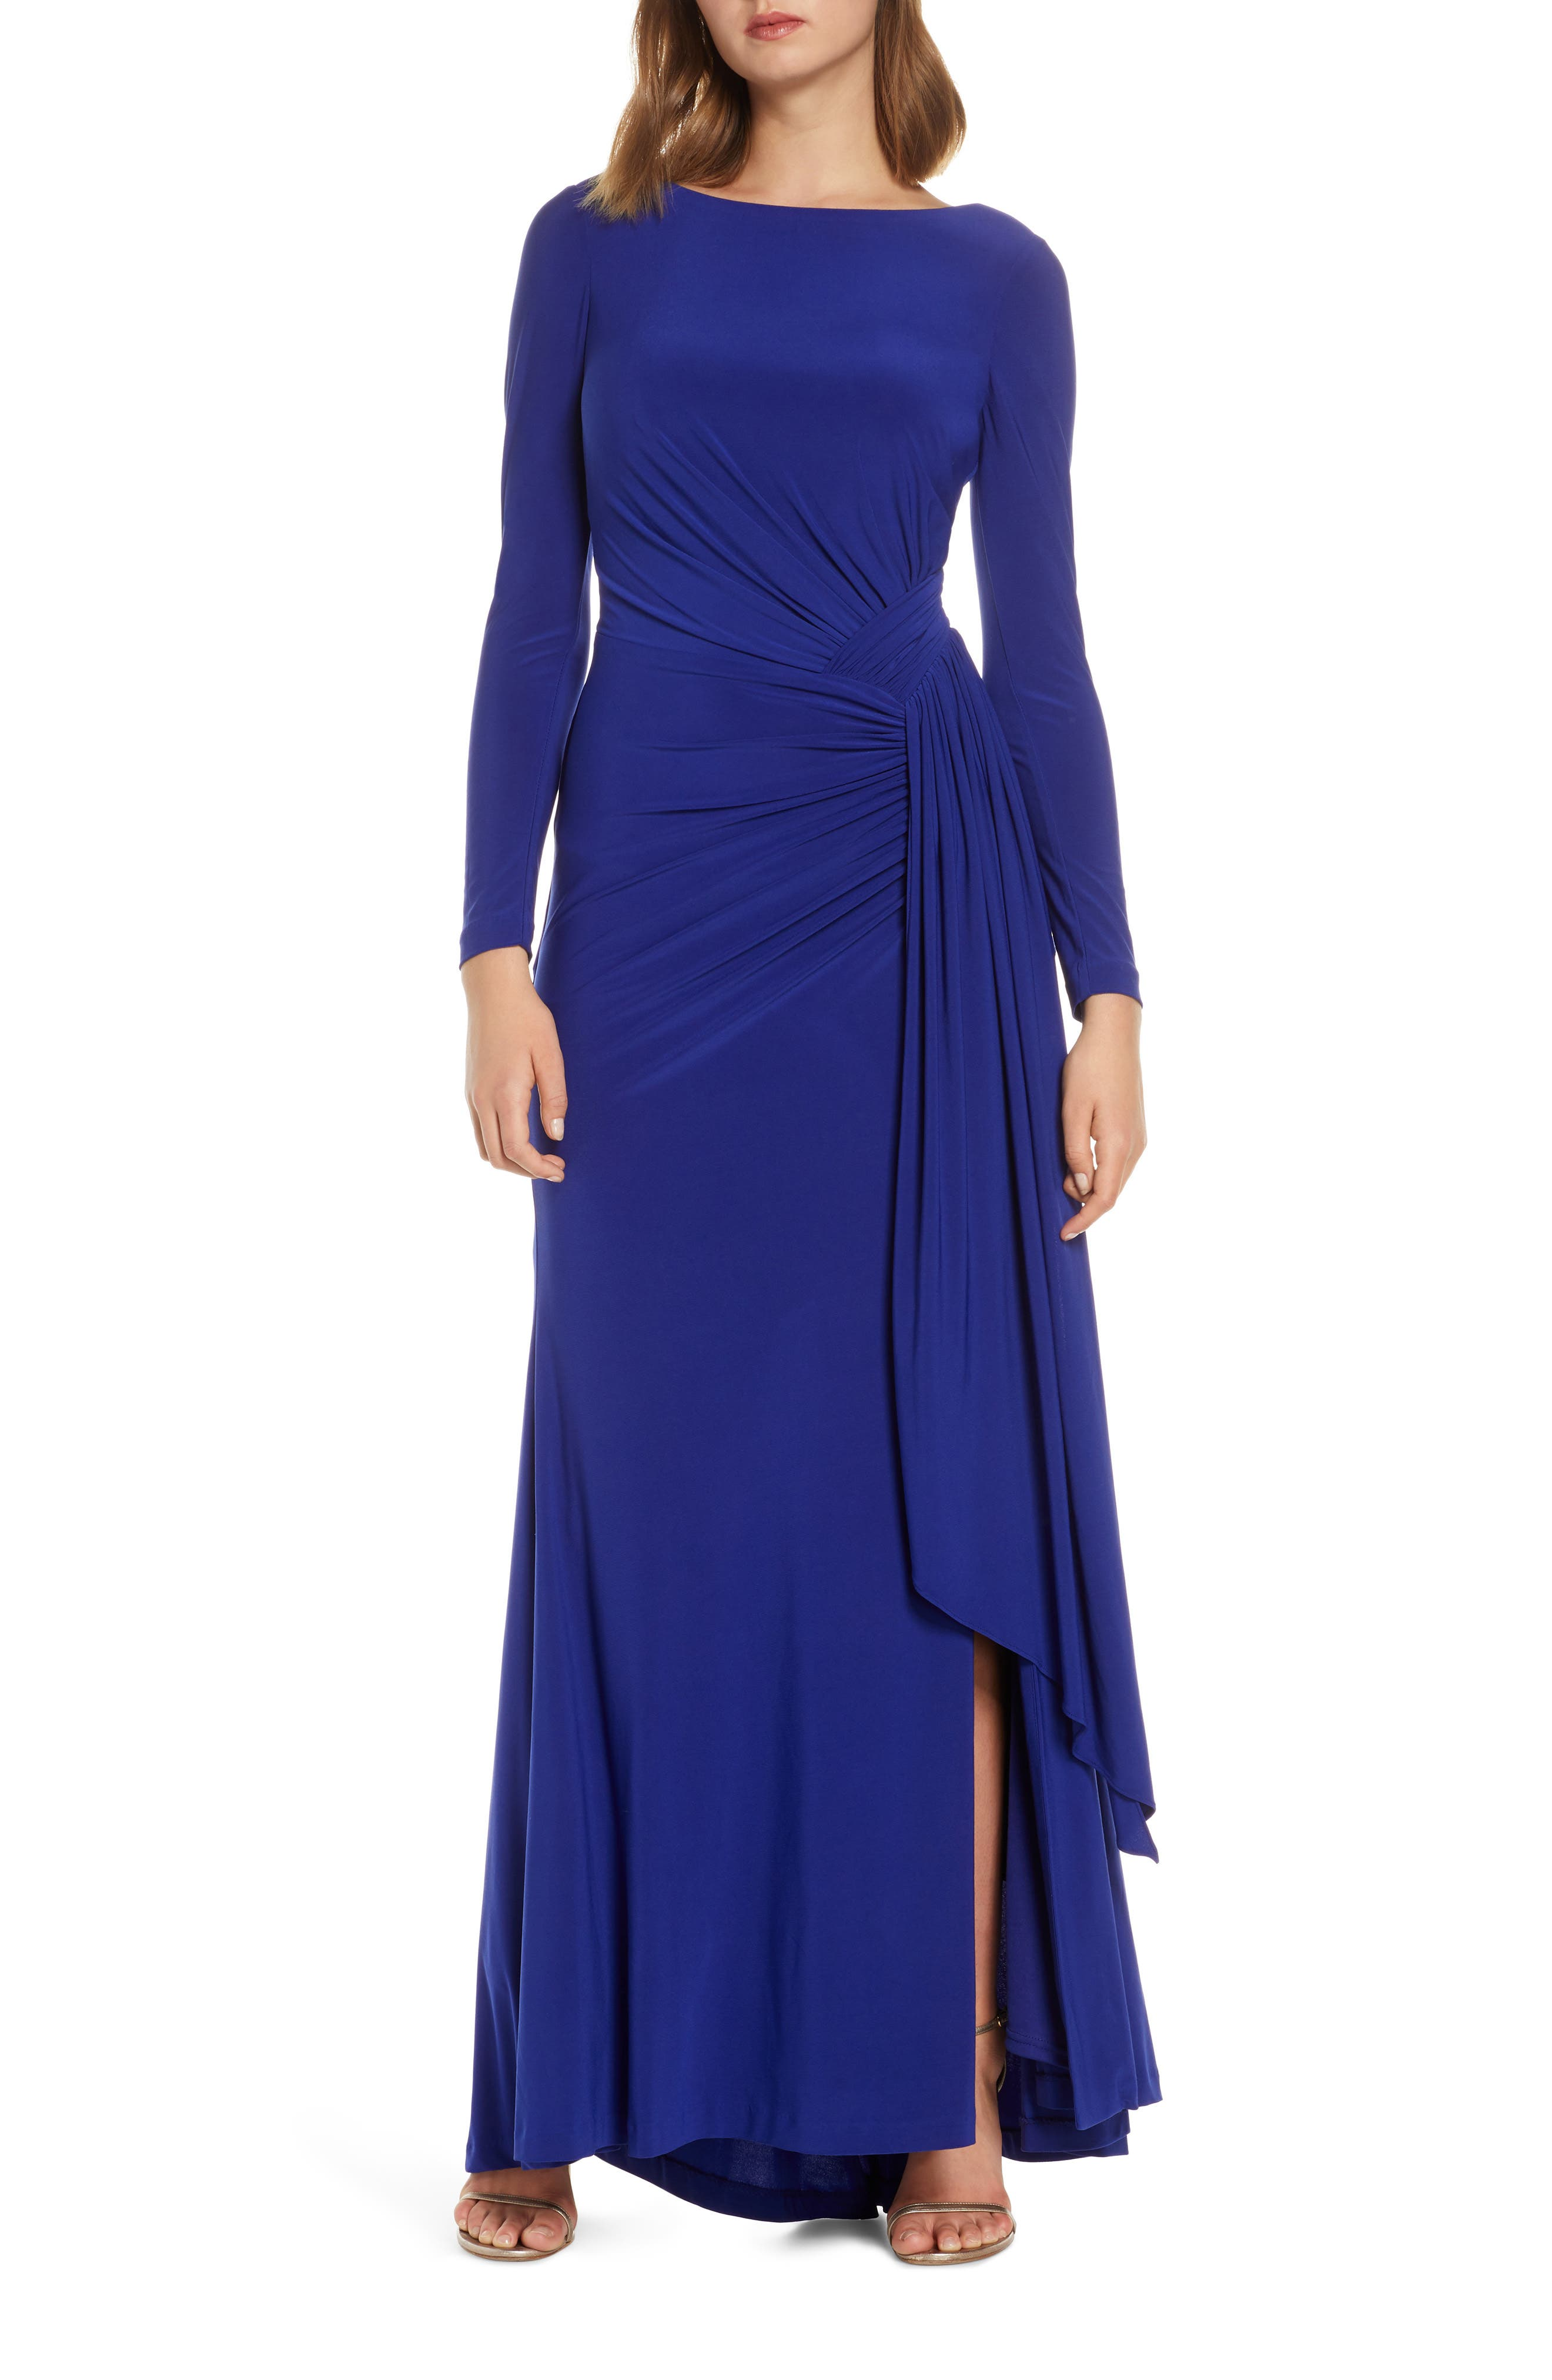 1940s Evening, Prom, Party, Formal, Ball Gowns Womens Vince Camuto Long Sleeve Ruched Gown Size 12 - Blue $83.98 AT vintagedancer.com